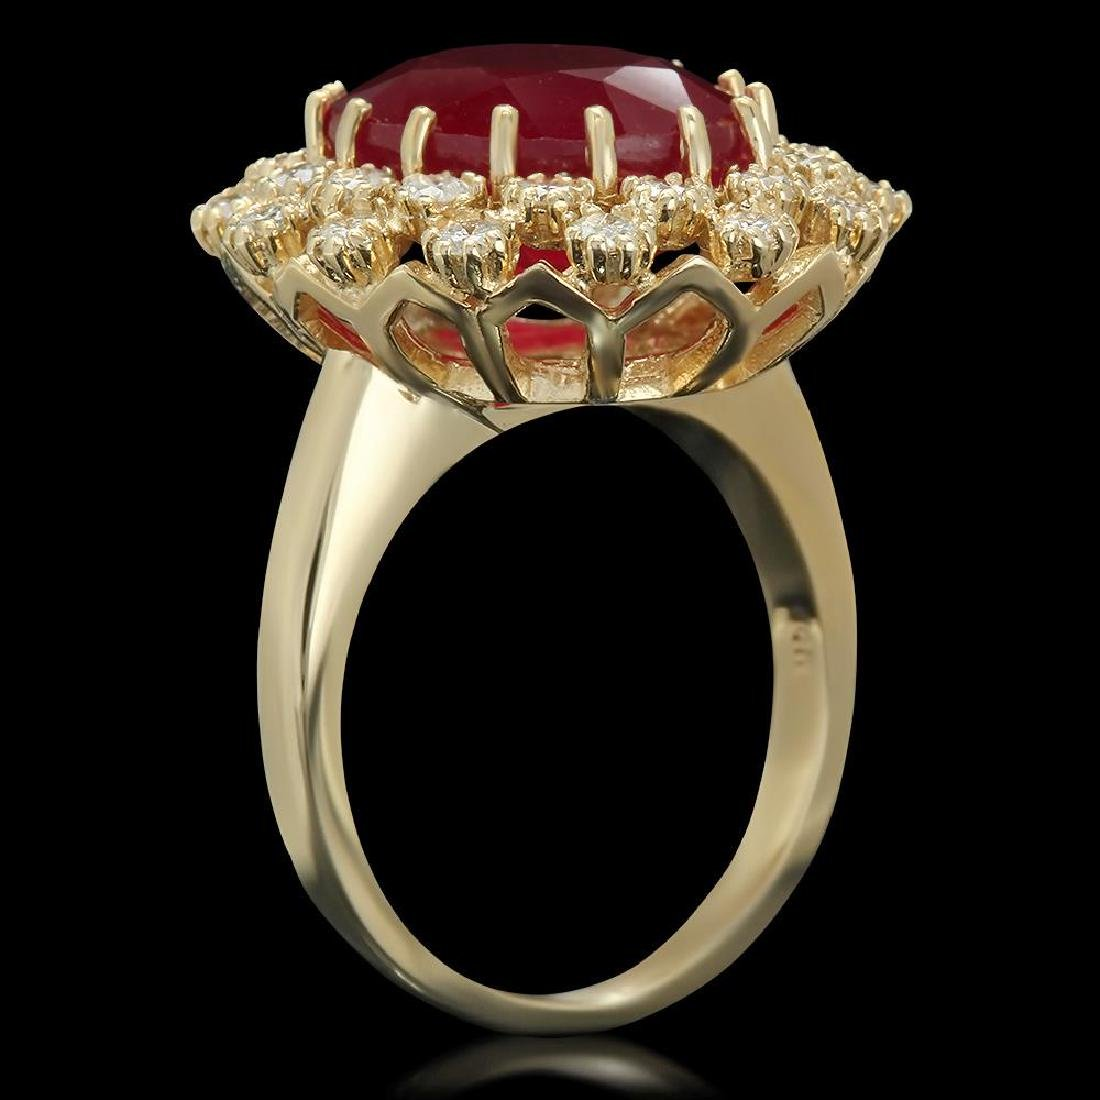 14K Gold 9.55ct Ruby 0.98ct Diamond Ring - 2